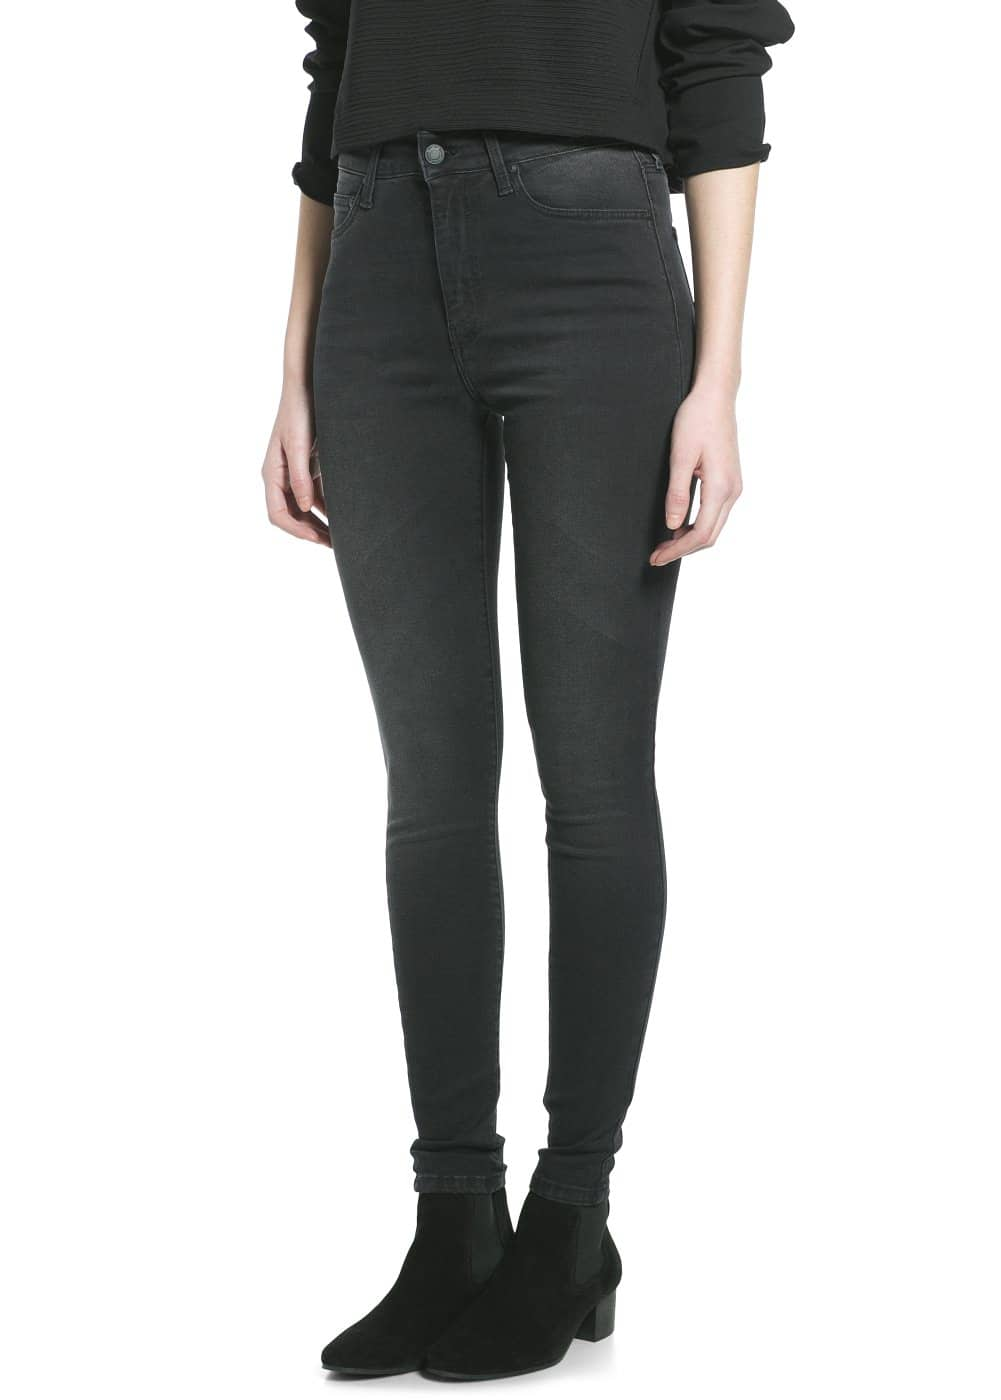 Broadway high-waist jeans